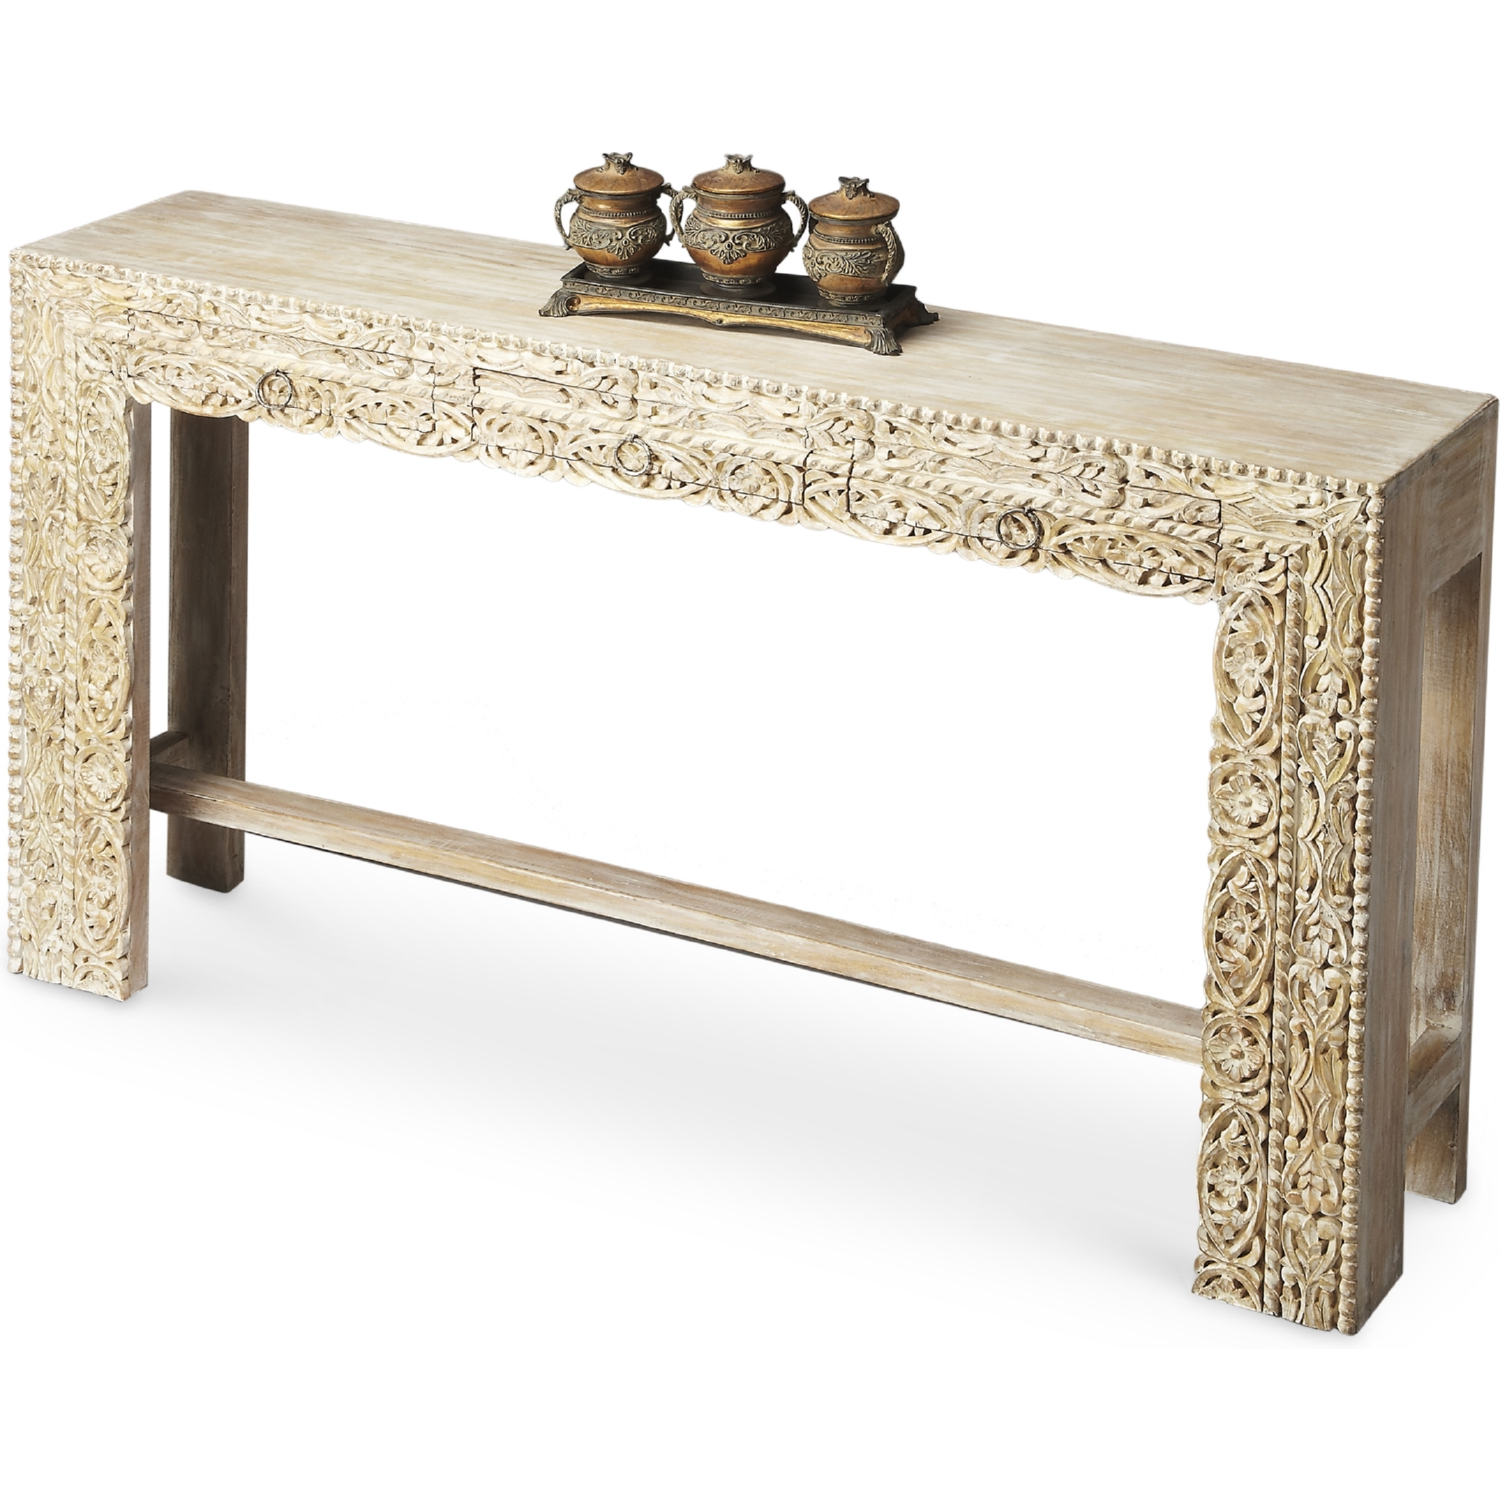 Peculiar Butler Ty Artifacts Console Table Recycled Mango Wood Butler Ty Artifacts Console Table Recycled Wood Console Table Tv Stand Wood Console Table Rustic houzz-03 Wood Console Table